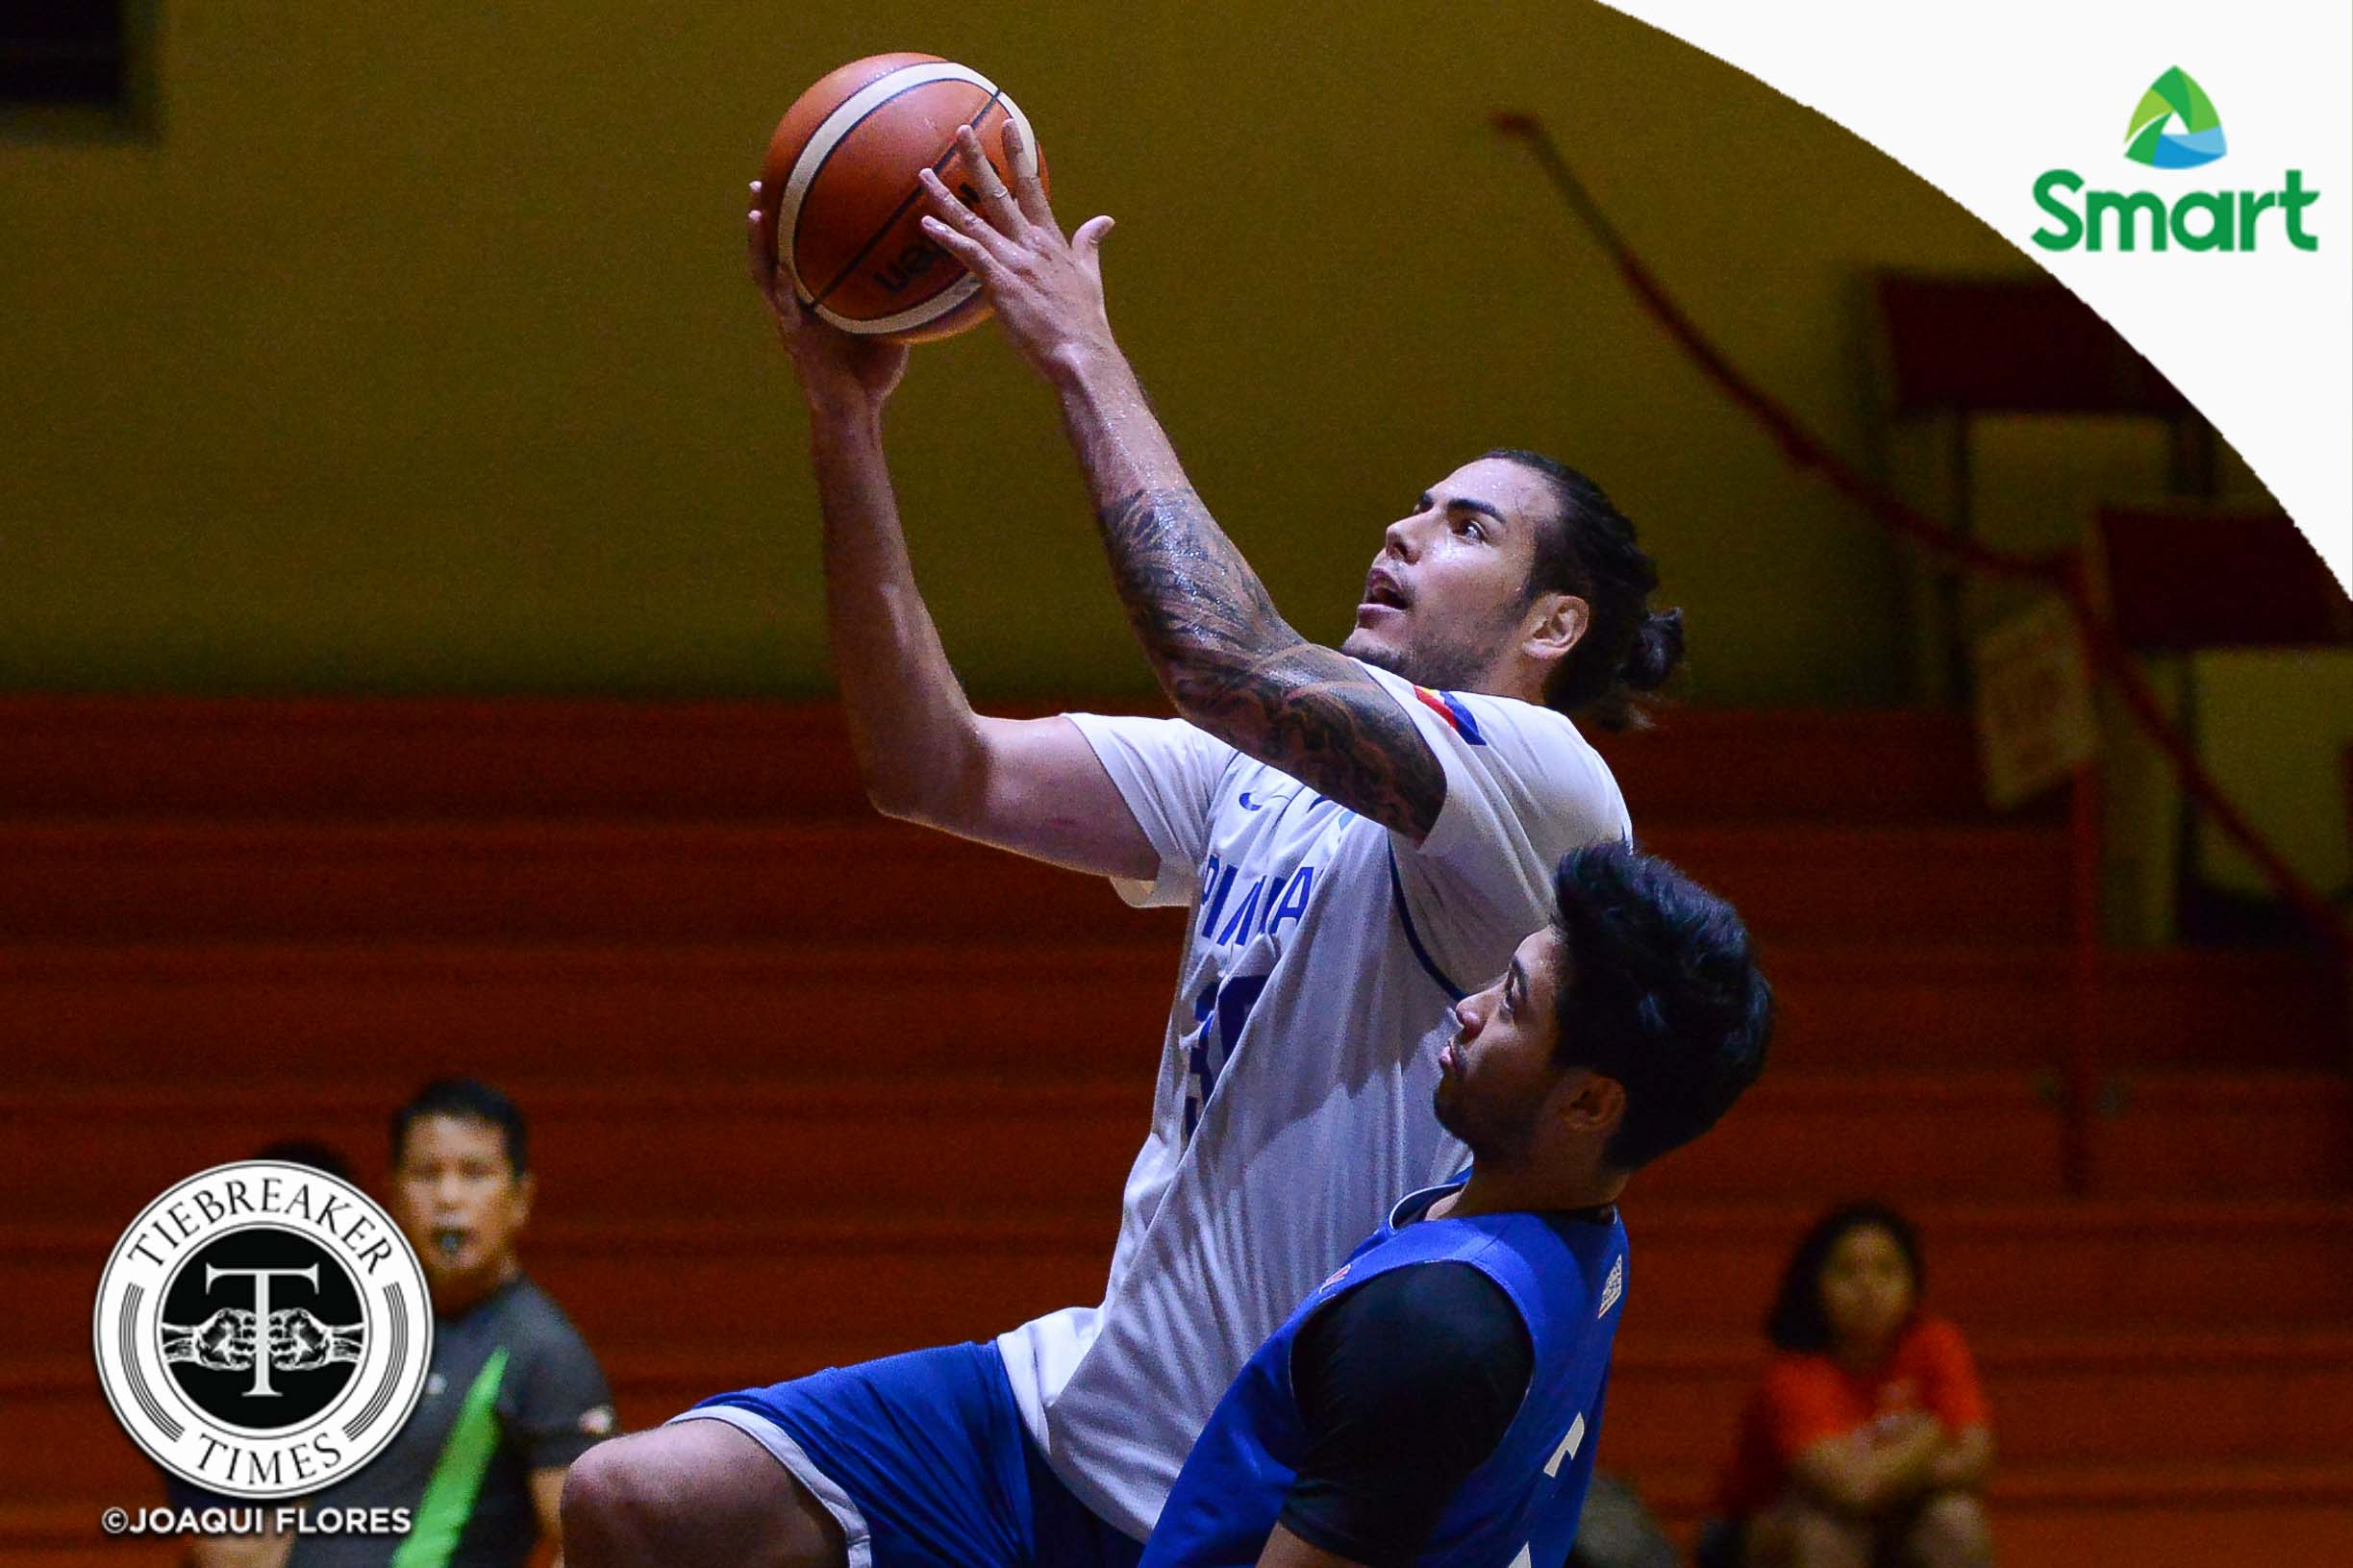 Tiebreaker Times Christian Standhardinger takes part in Gilas practice Basketball Gilas Pilipinas News  Yeng Guiao Stanley Pringle Ricci Rivero Raymond Almazan Paul Lee Maverick Ahanmisi James Yap Gabe Norwood Don Trollano Christian Standhardinger Chris Tiu Beau Belga Asi Taulava 2018 Asian Games-Basketball 2018 Asian Games